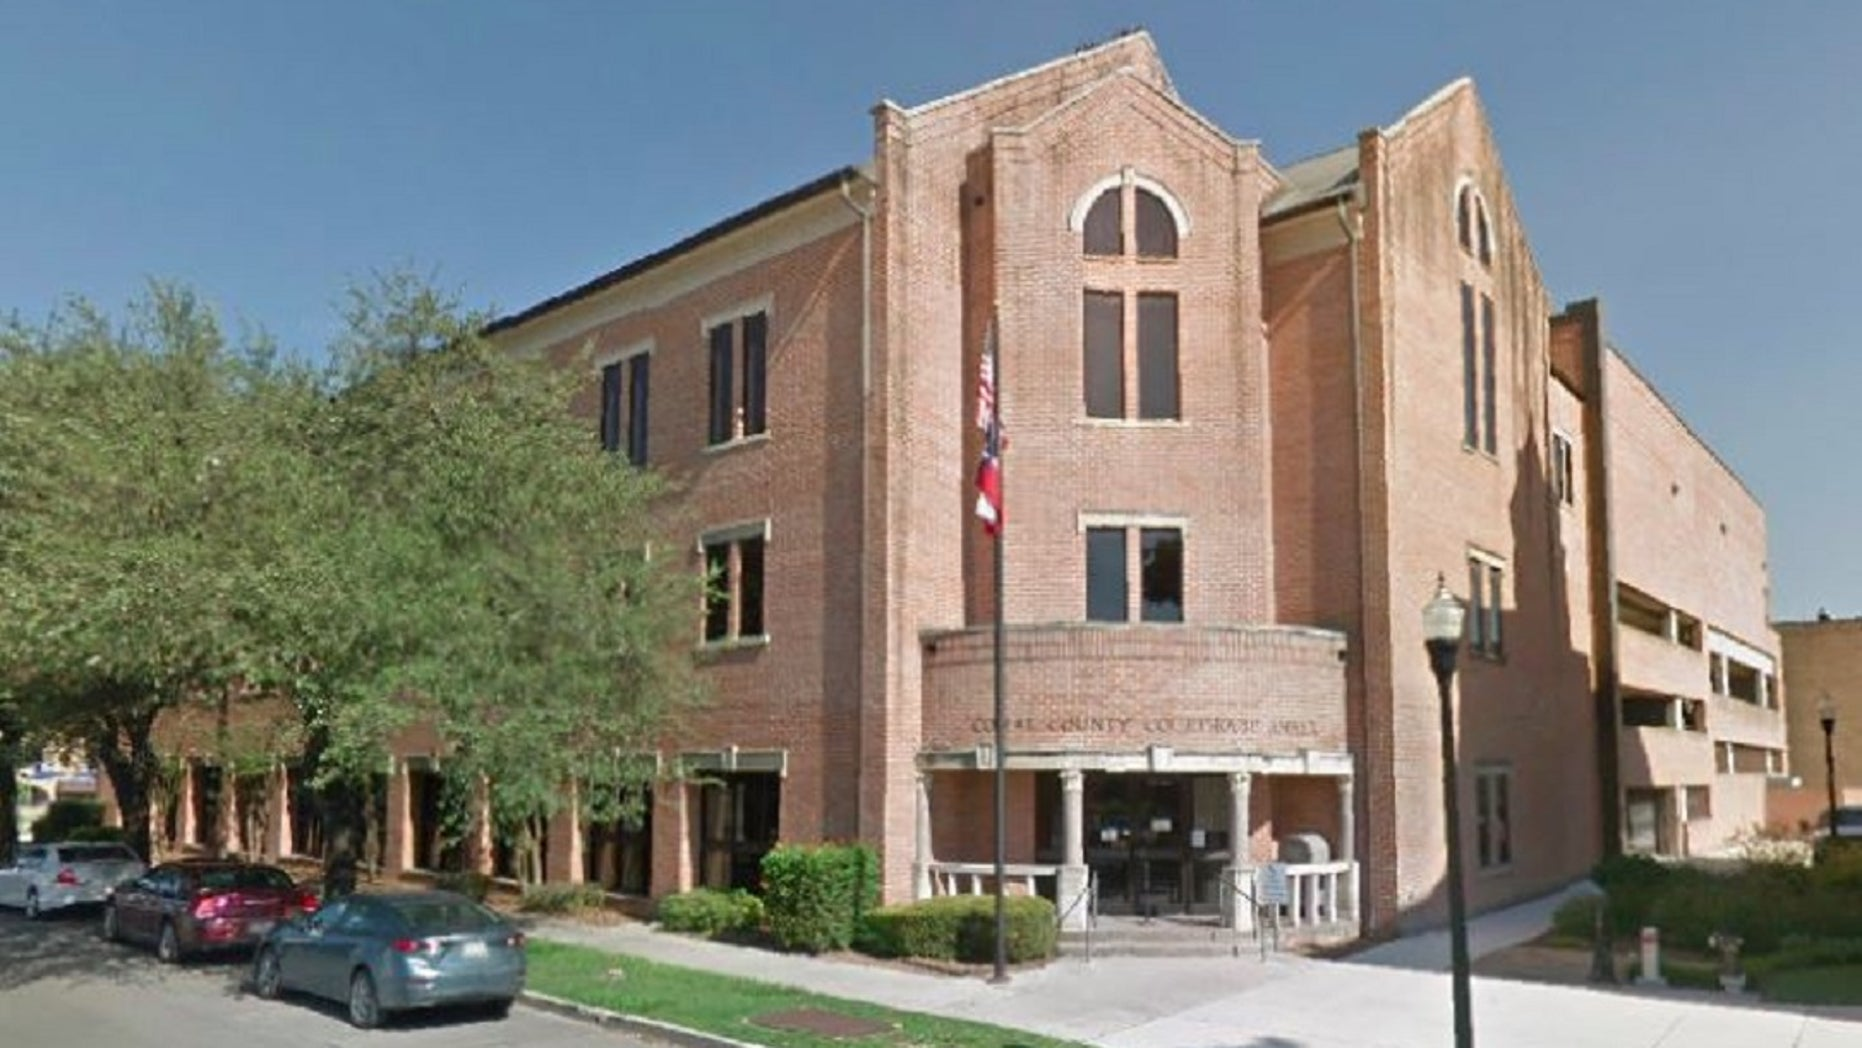 <br> Comal County District Court Judge Jack Robinson was given a public warning for telling jurors that God told him a convicted defendant was innocent.